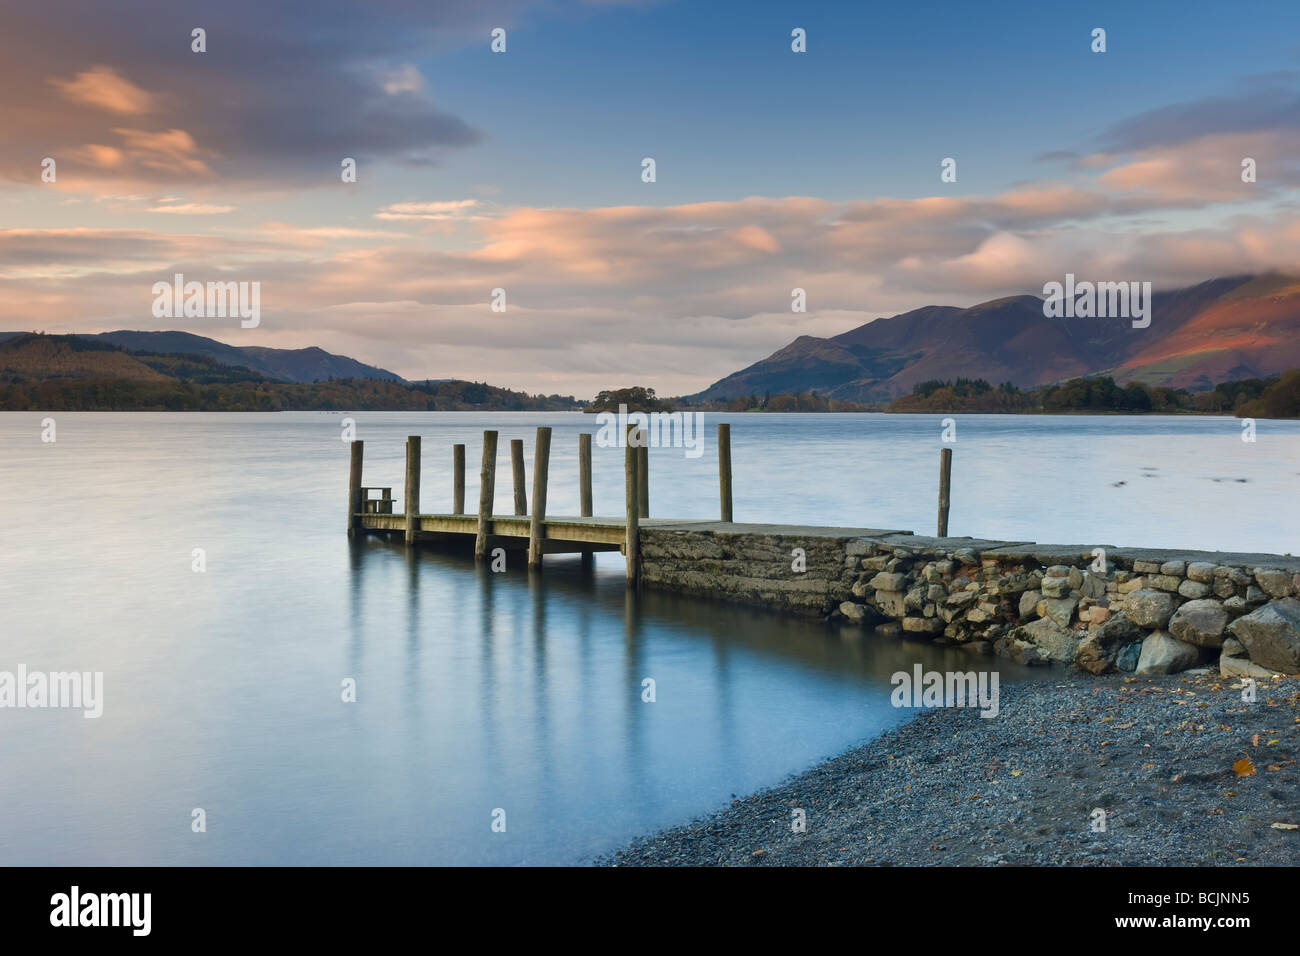 Derwent Water, Parc National de Lake District, Cumbria, England, UK - voir le long de la jetée en bois à Photo Stock